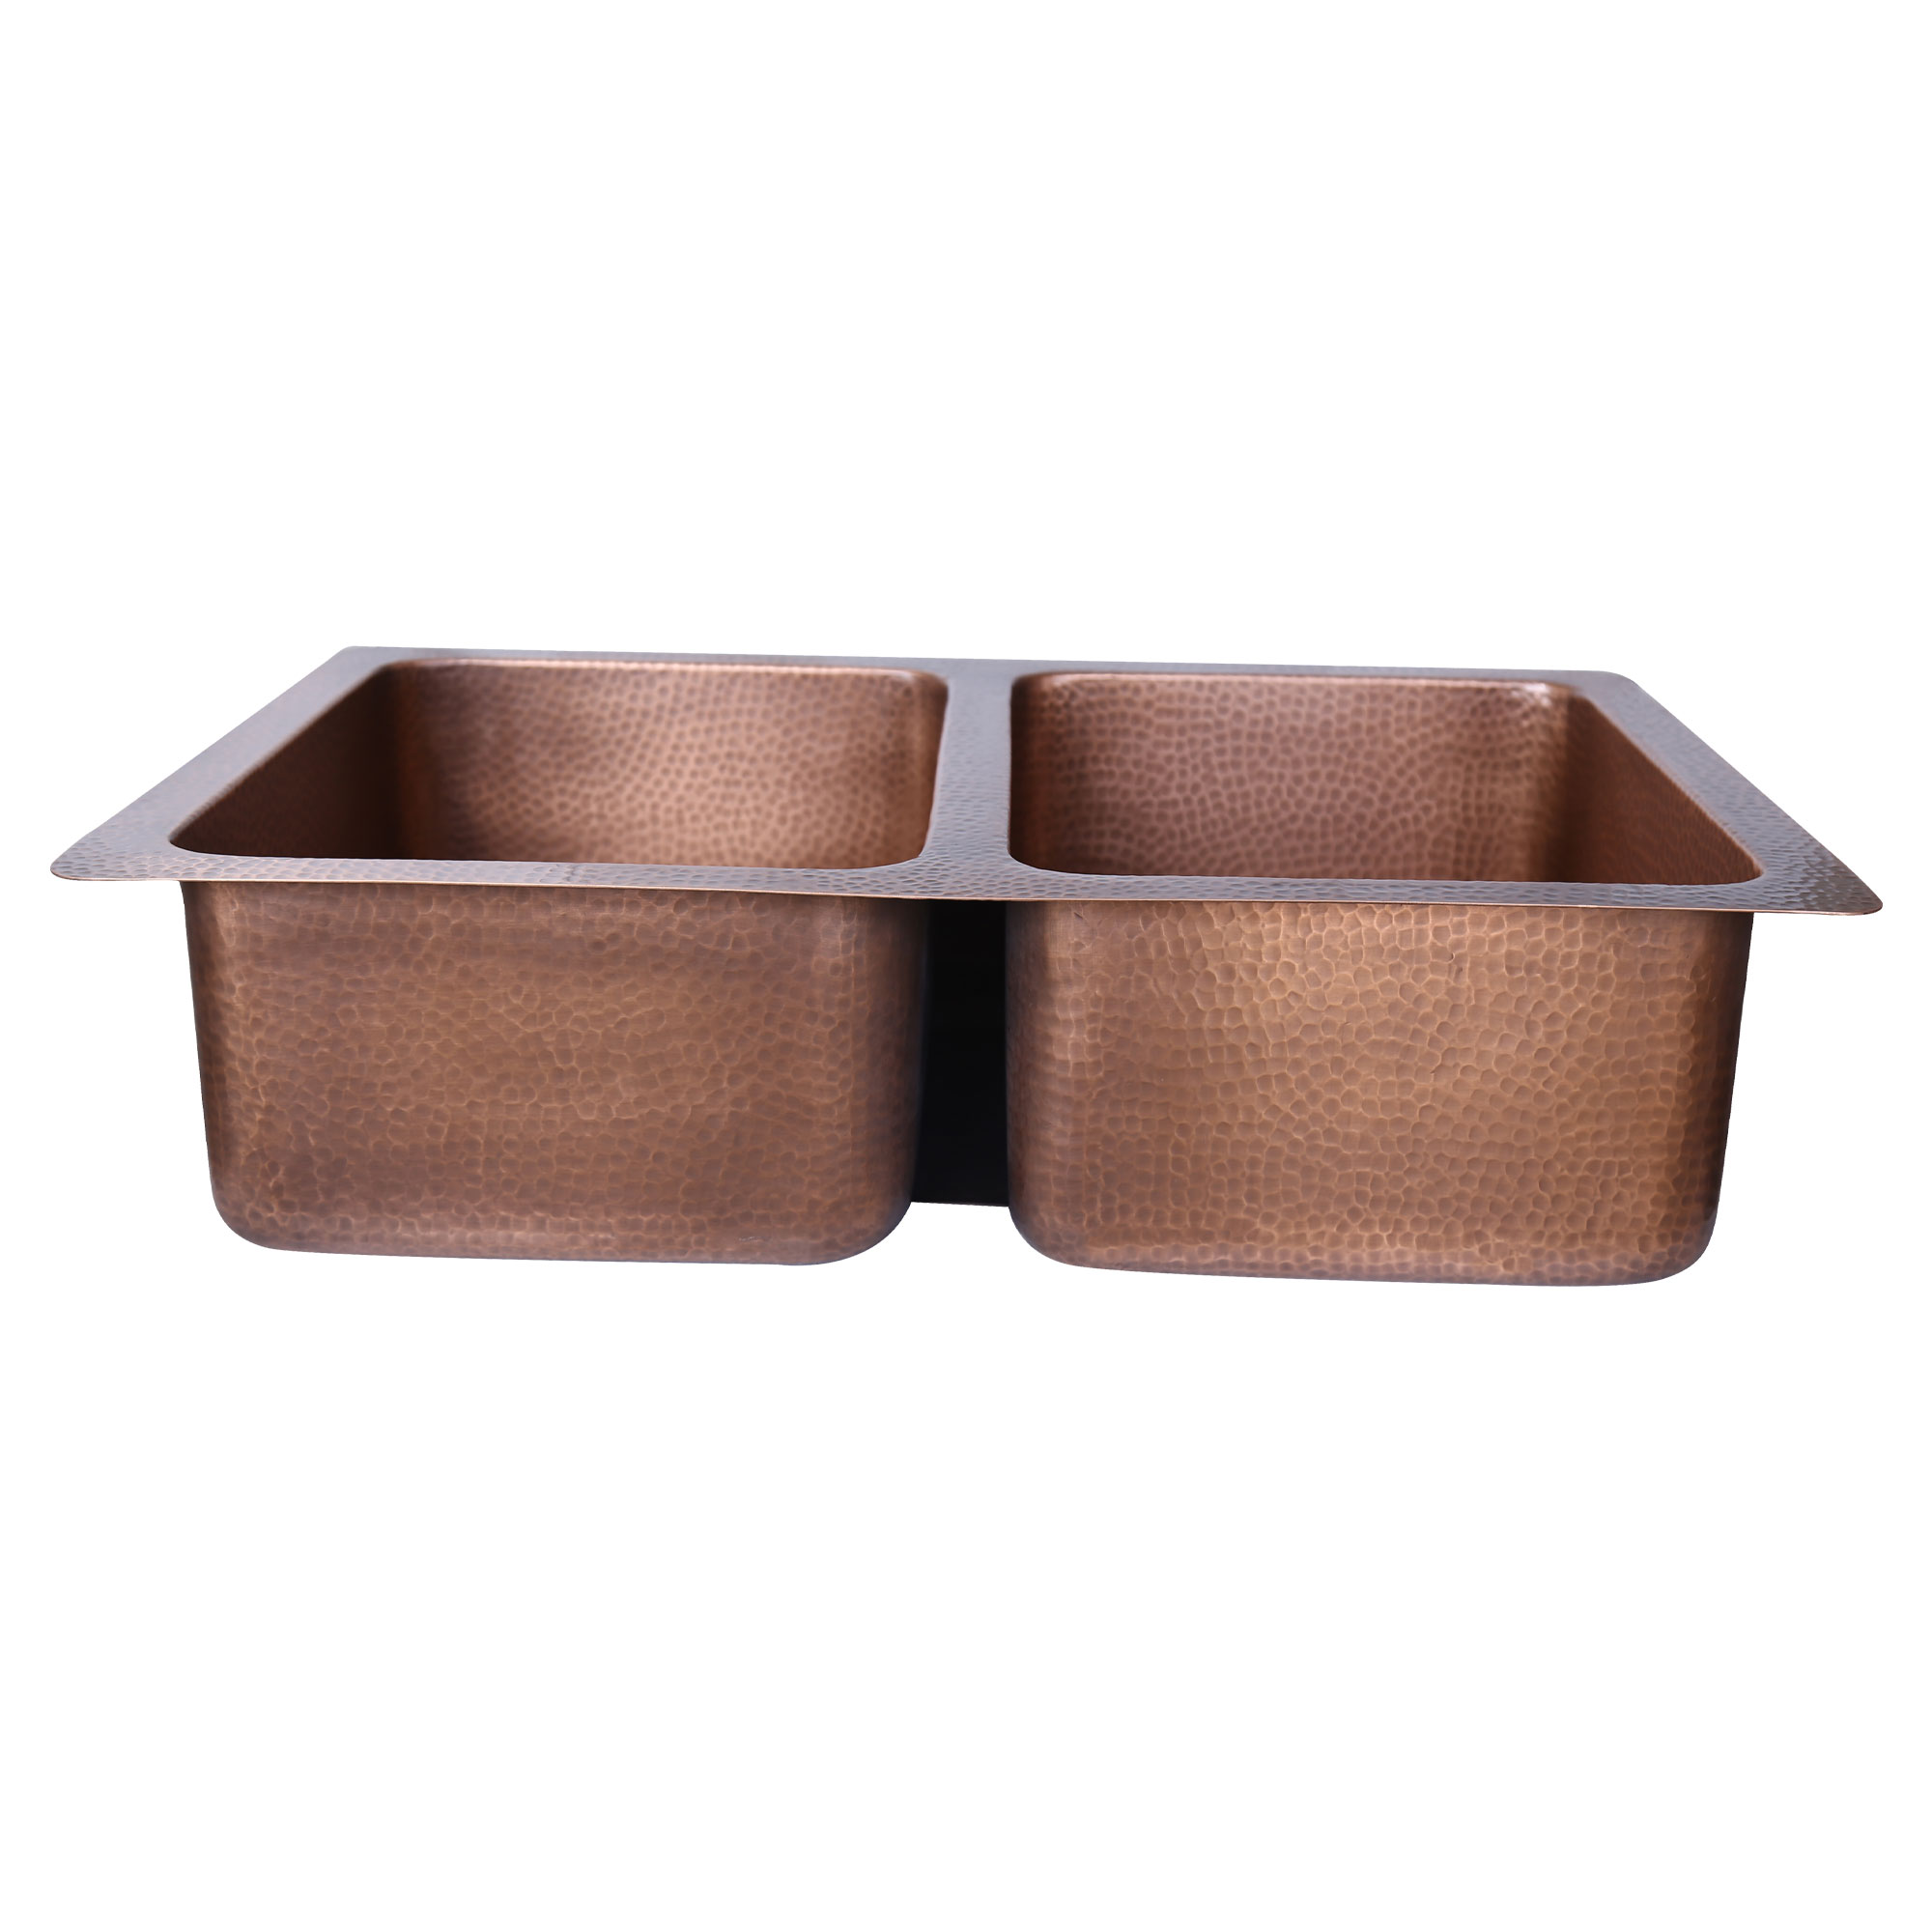 Double Bowl Single Wall Copper Kitchen Sink Hammered Antique Finish Without Front Apron Coppersmith Creations